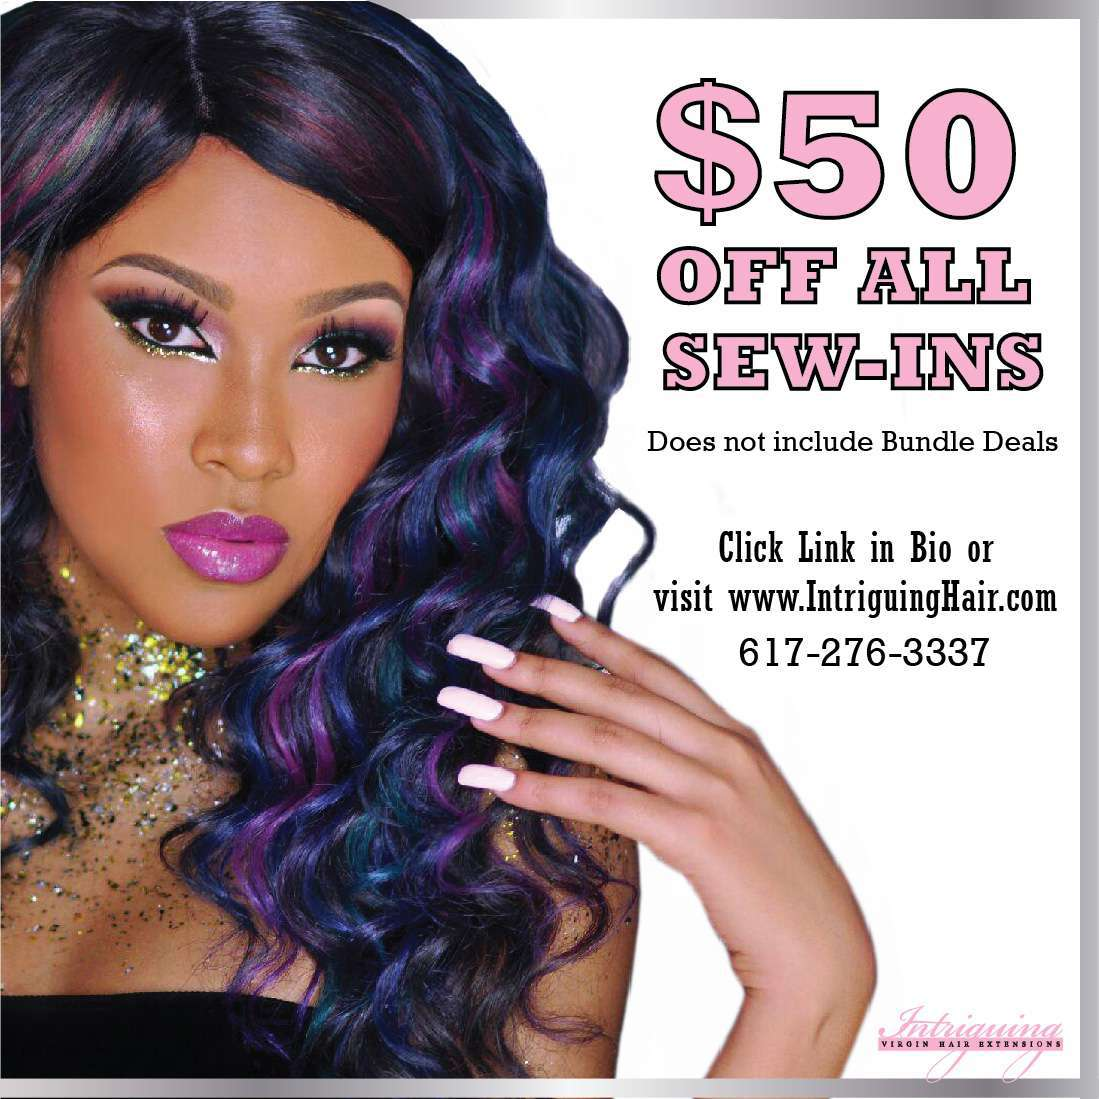 Boston weaves All Sew-ins $50 off